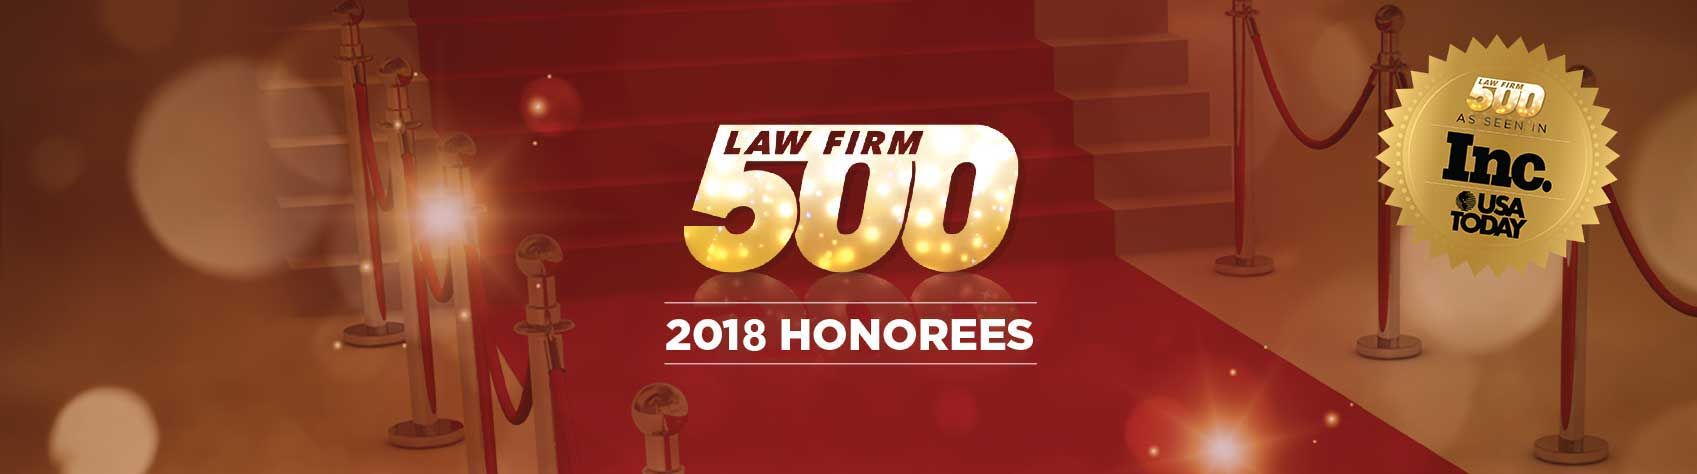 2018 Award Honorees - Law Firm 500